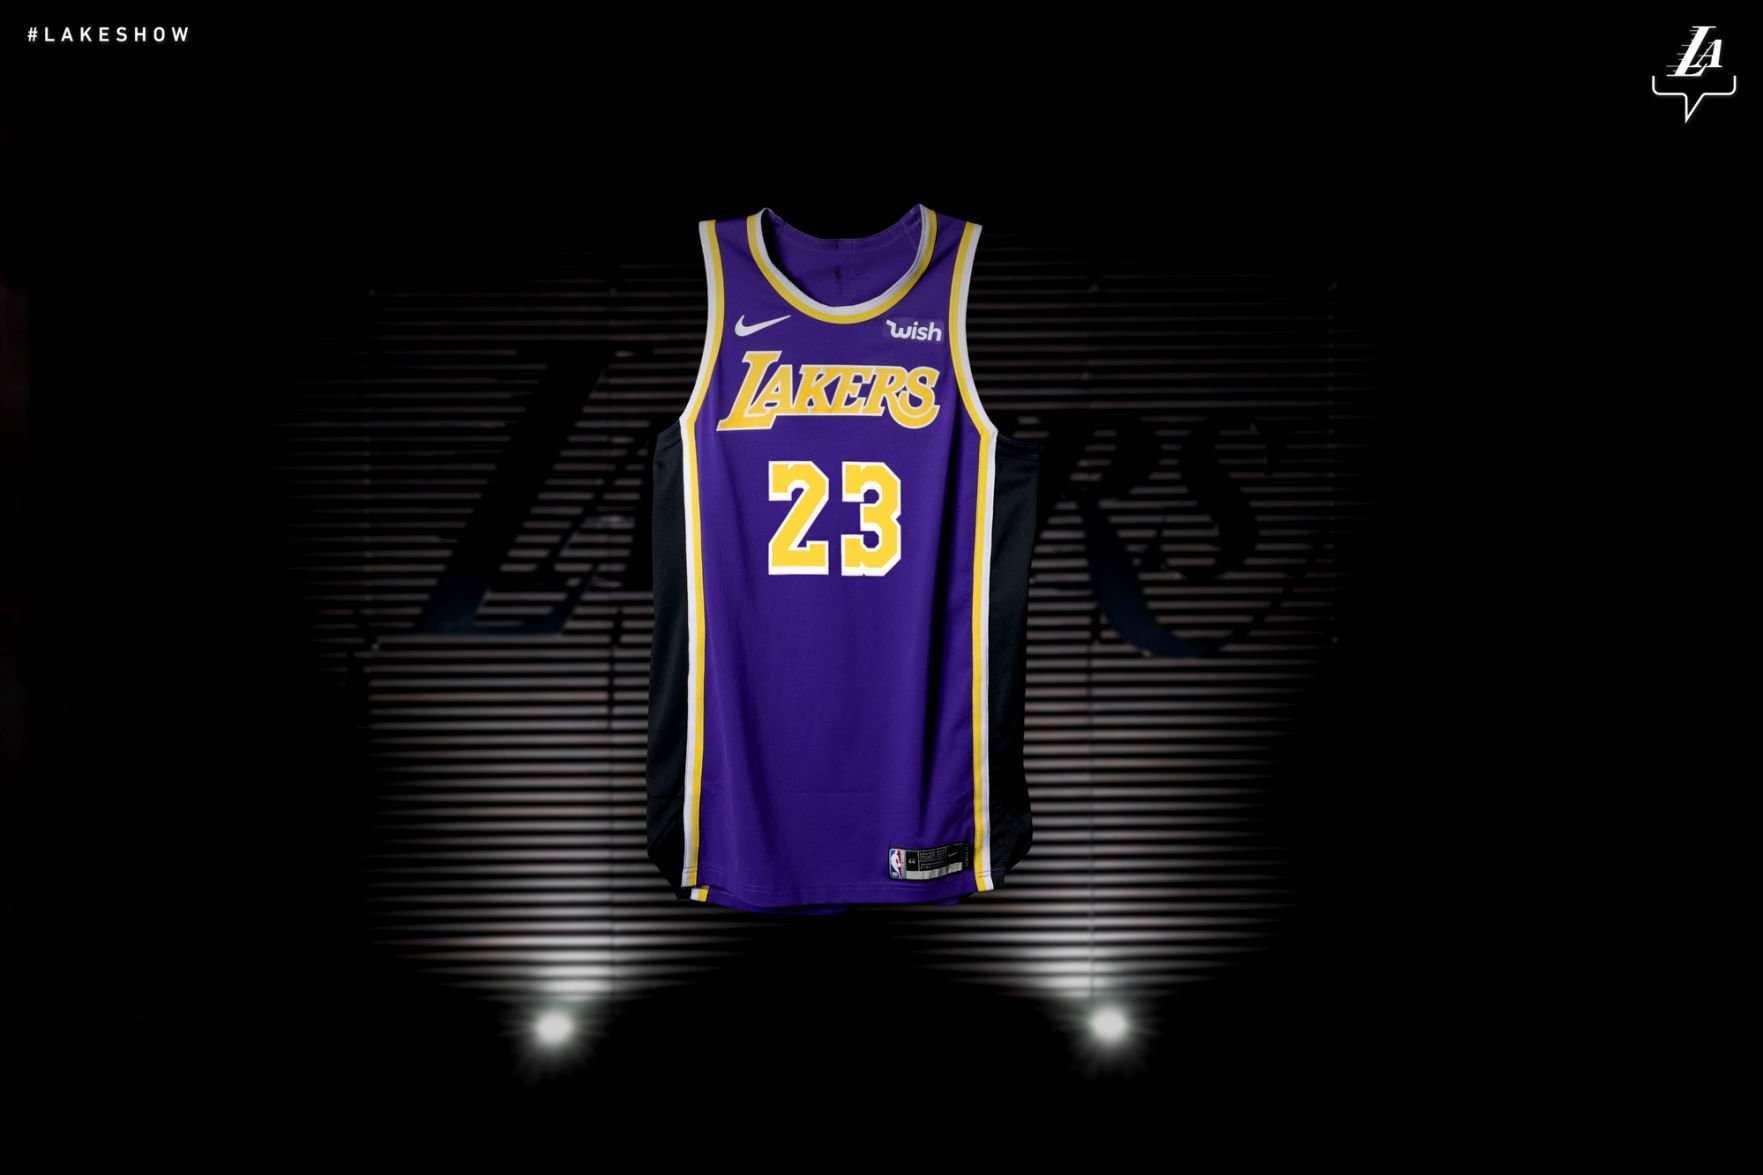 Los Angeles Lakers unveil new jersey